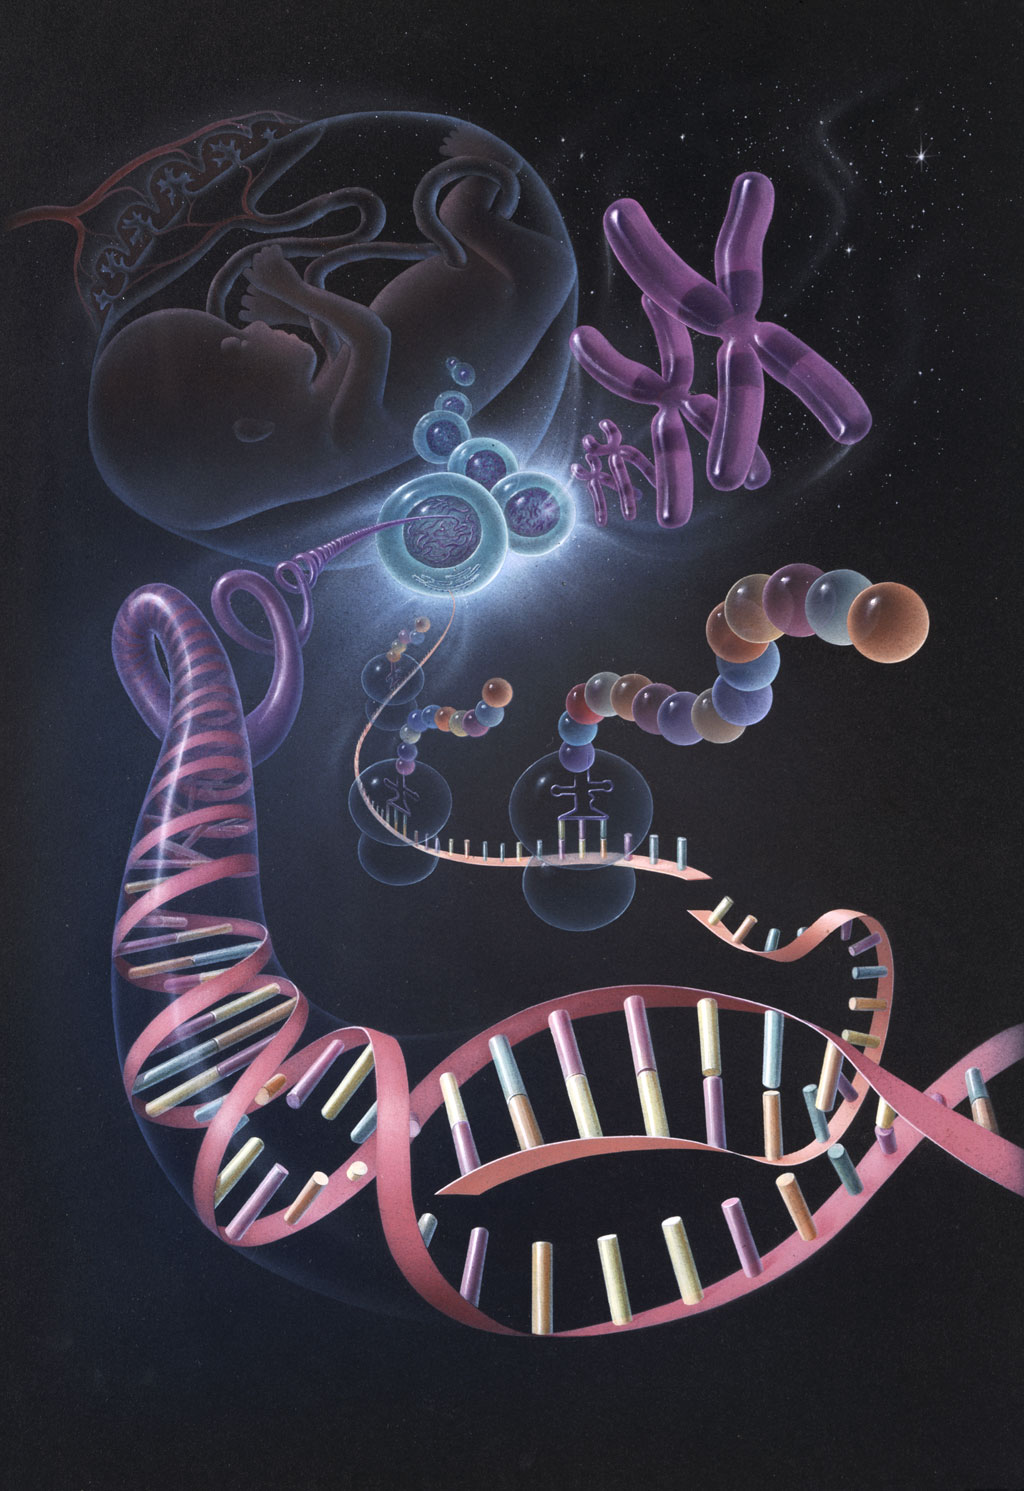 an analysis of the human genome project deciphering the code of life Human genome project - genome essay example some benefits that accrue with human genome understanding are, accurate and faster the analysis of the gene information is not easy with the use of the ordinary computers.